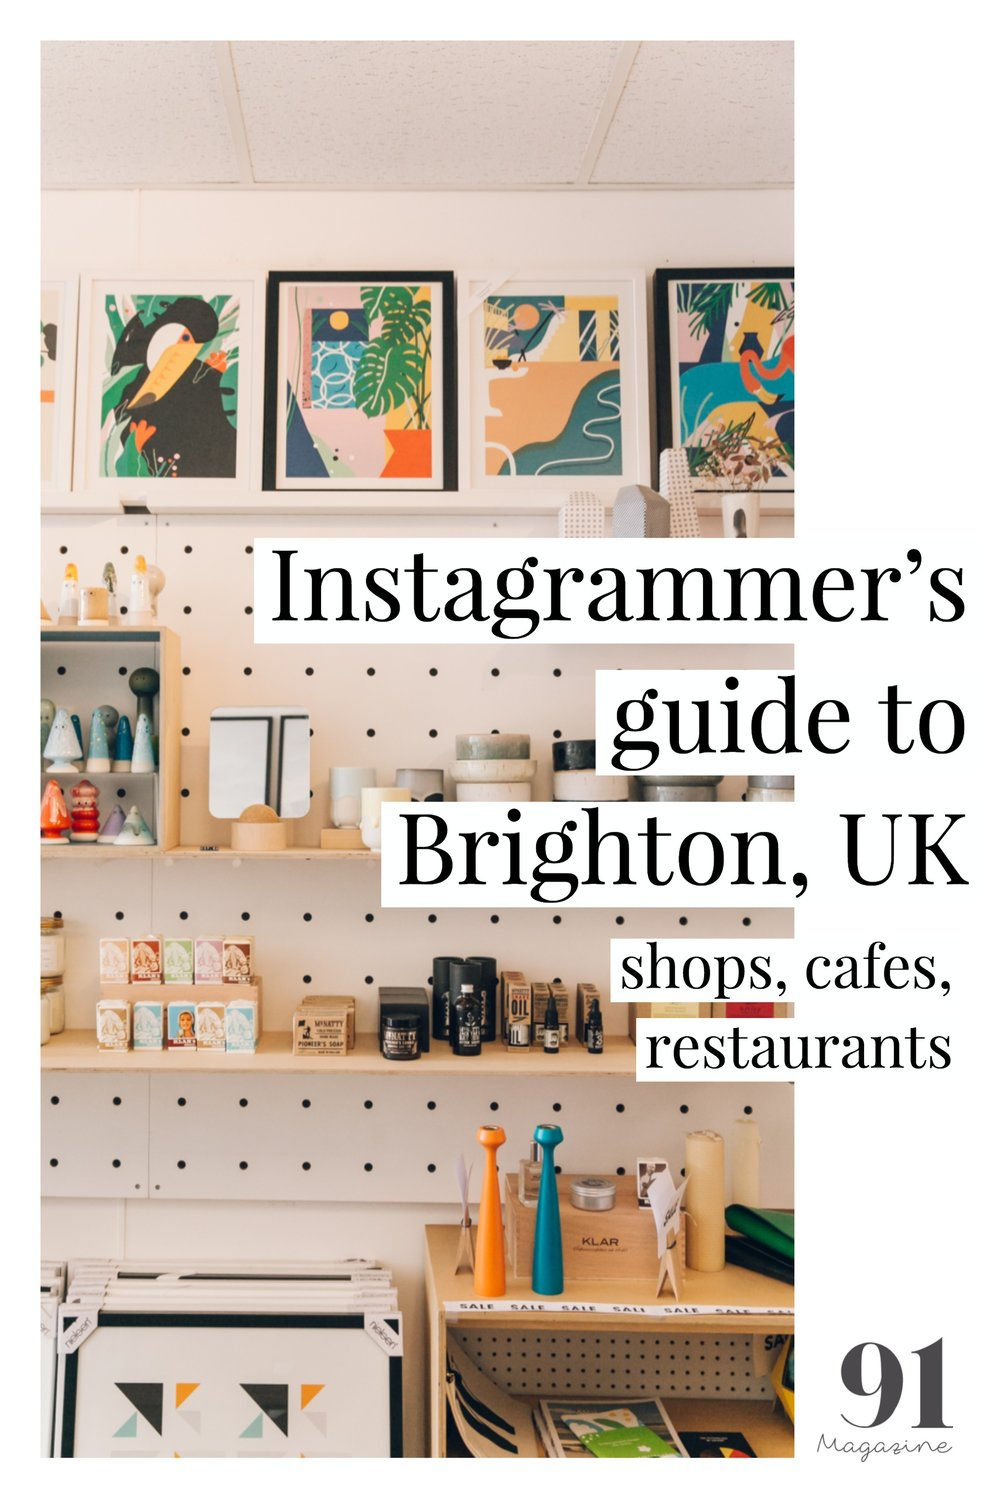 Instagrammer's guide to Brighton, UK